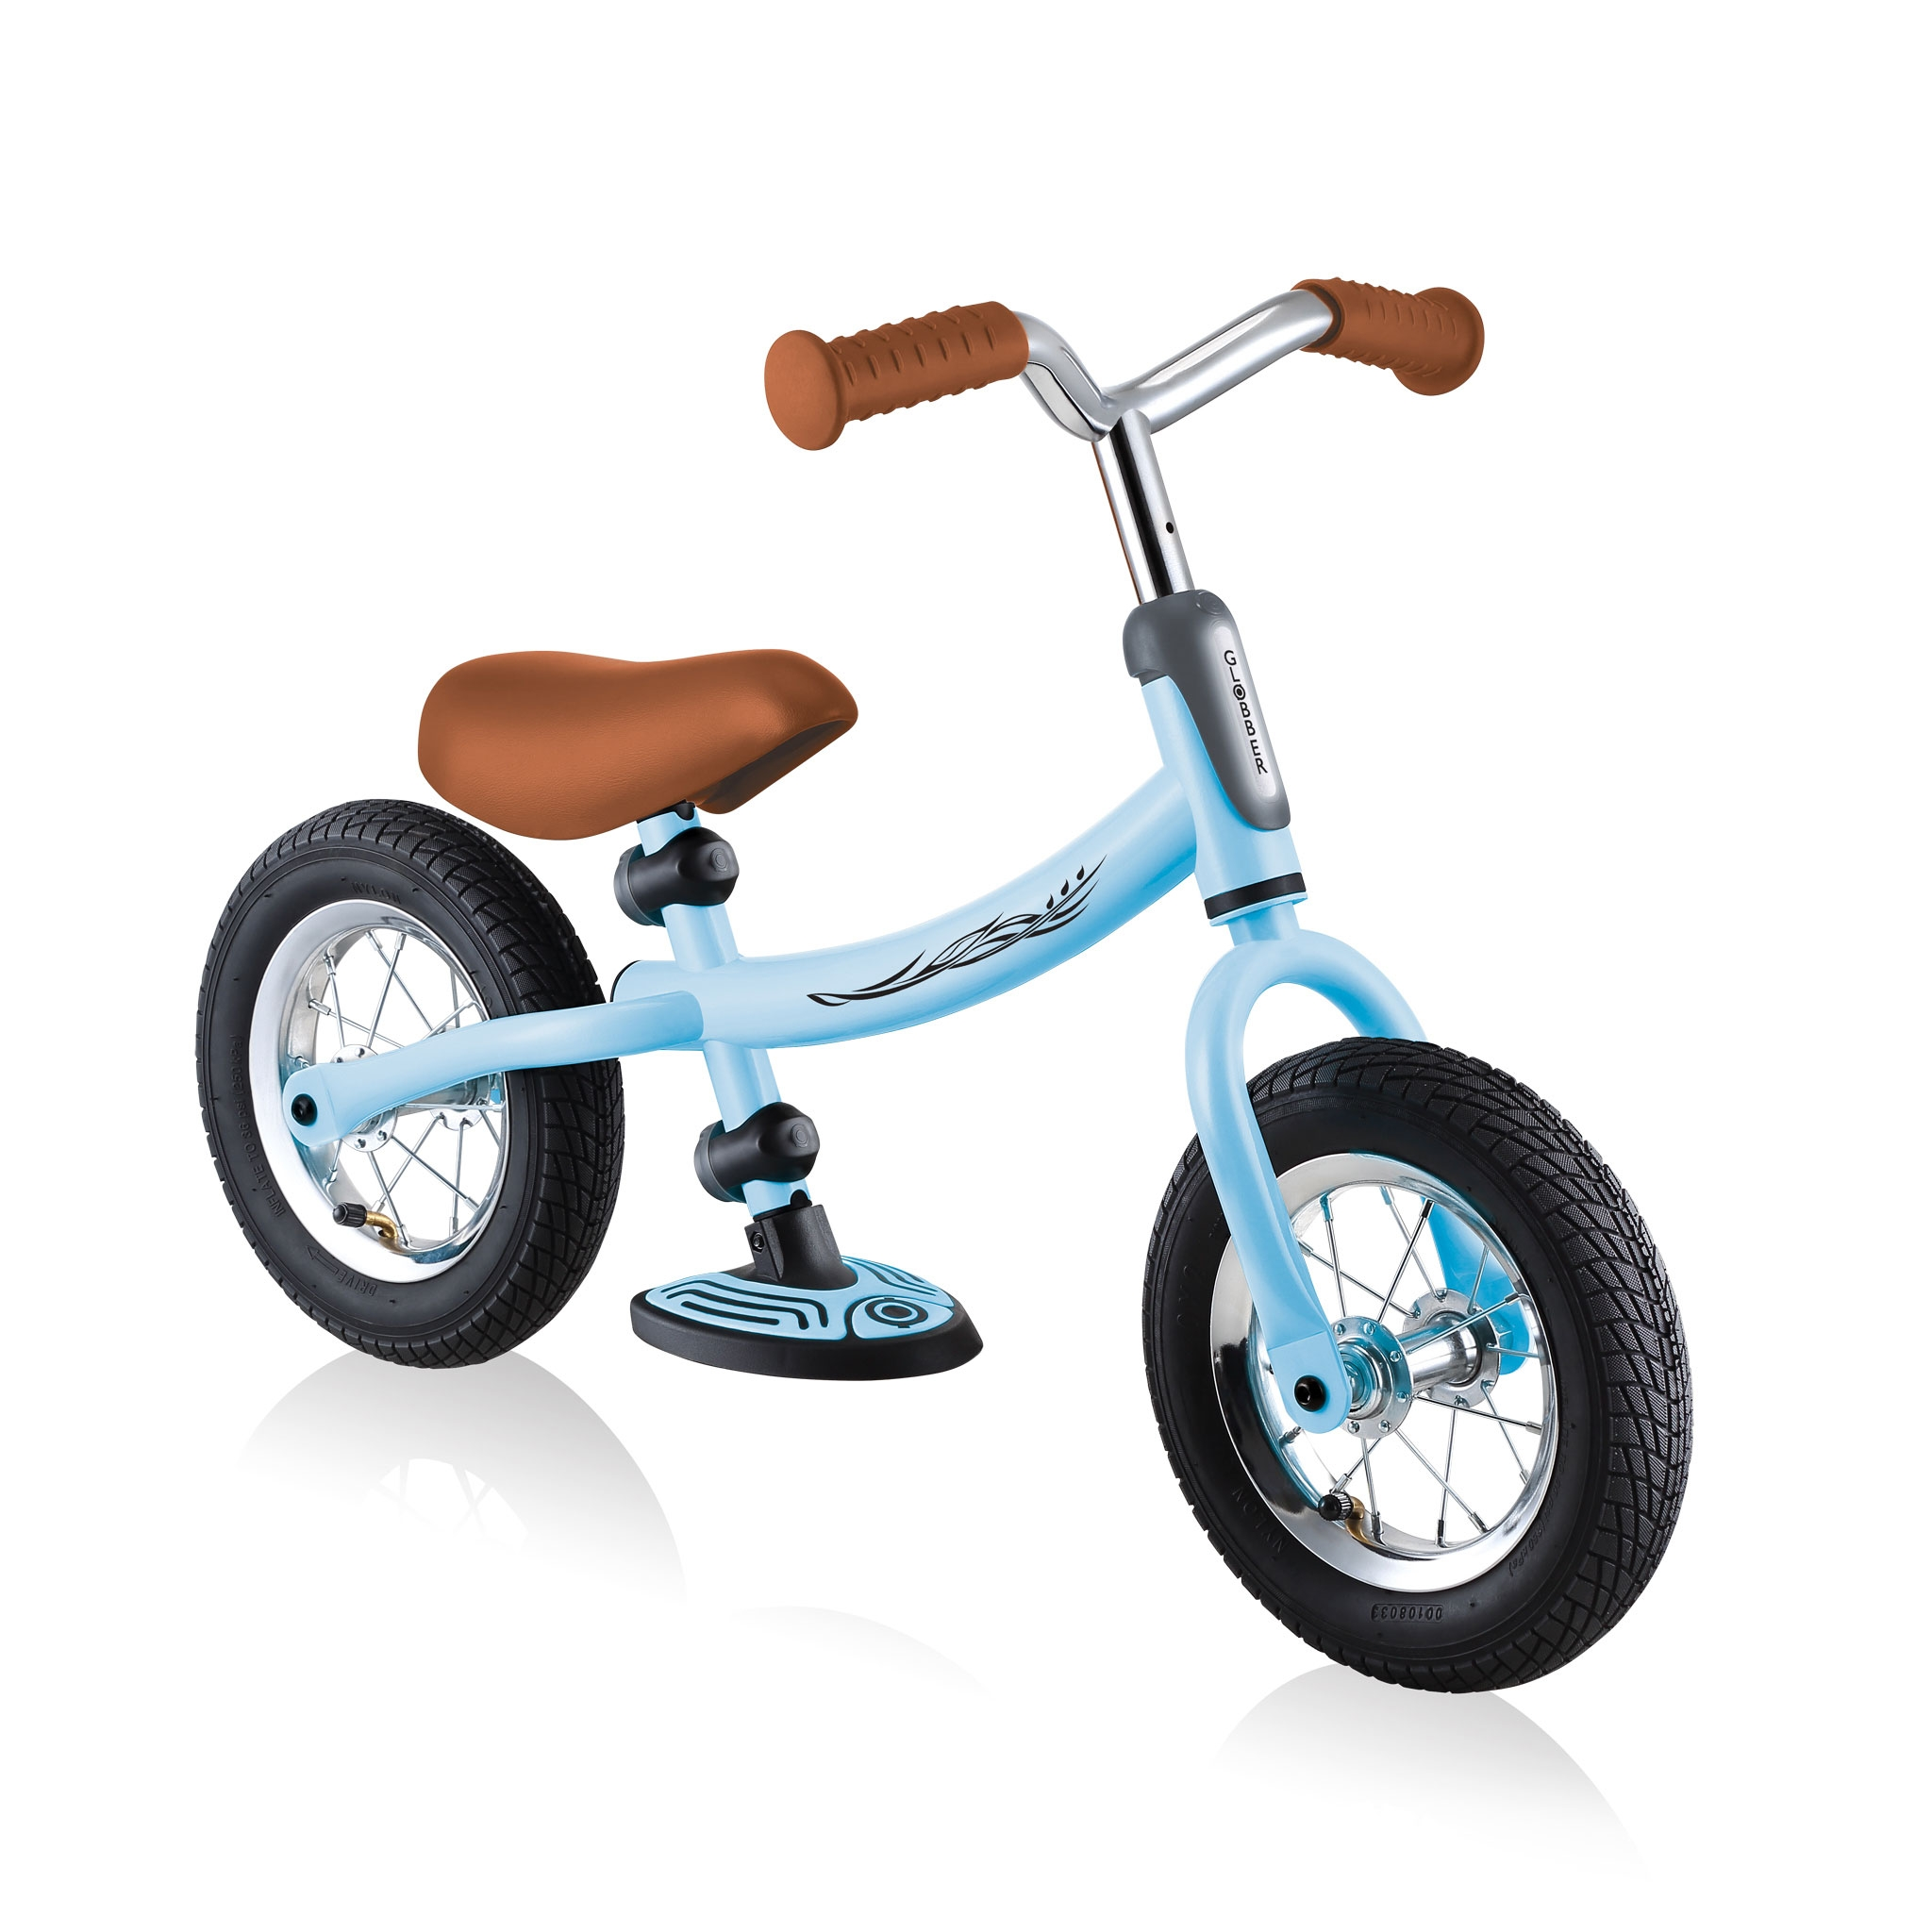 GO-BIKE-AIR-adjustable-toddler-balance-bike-with-reversible-frame 0